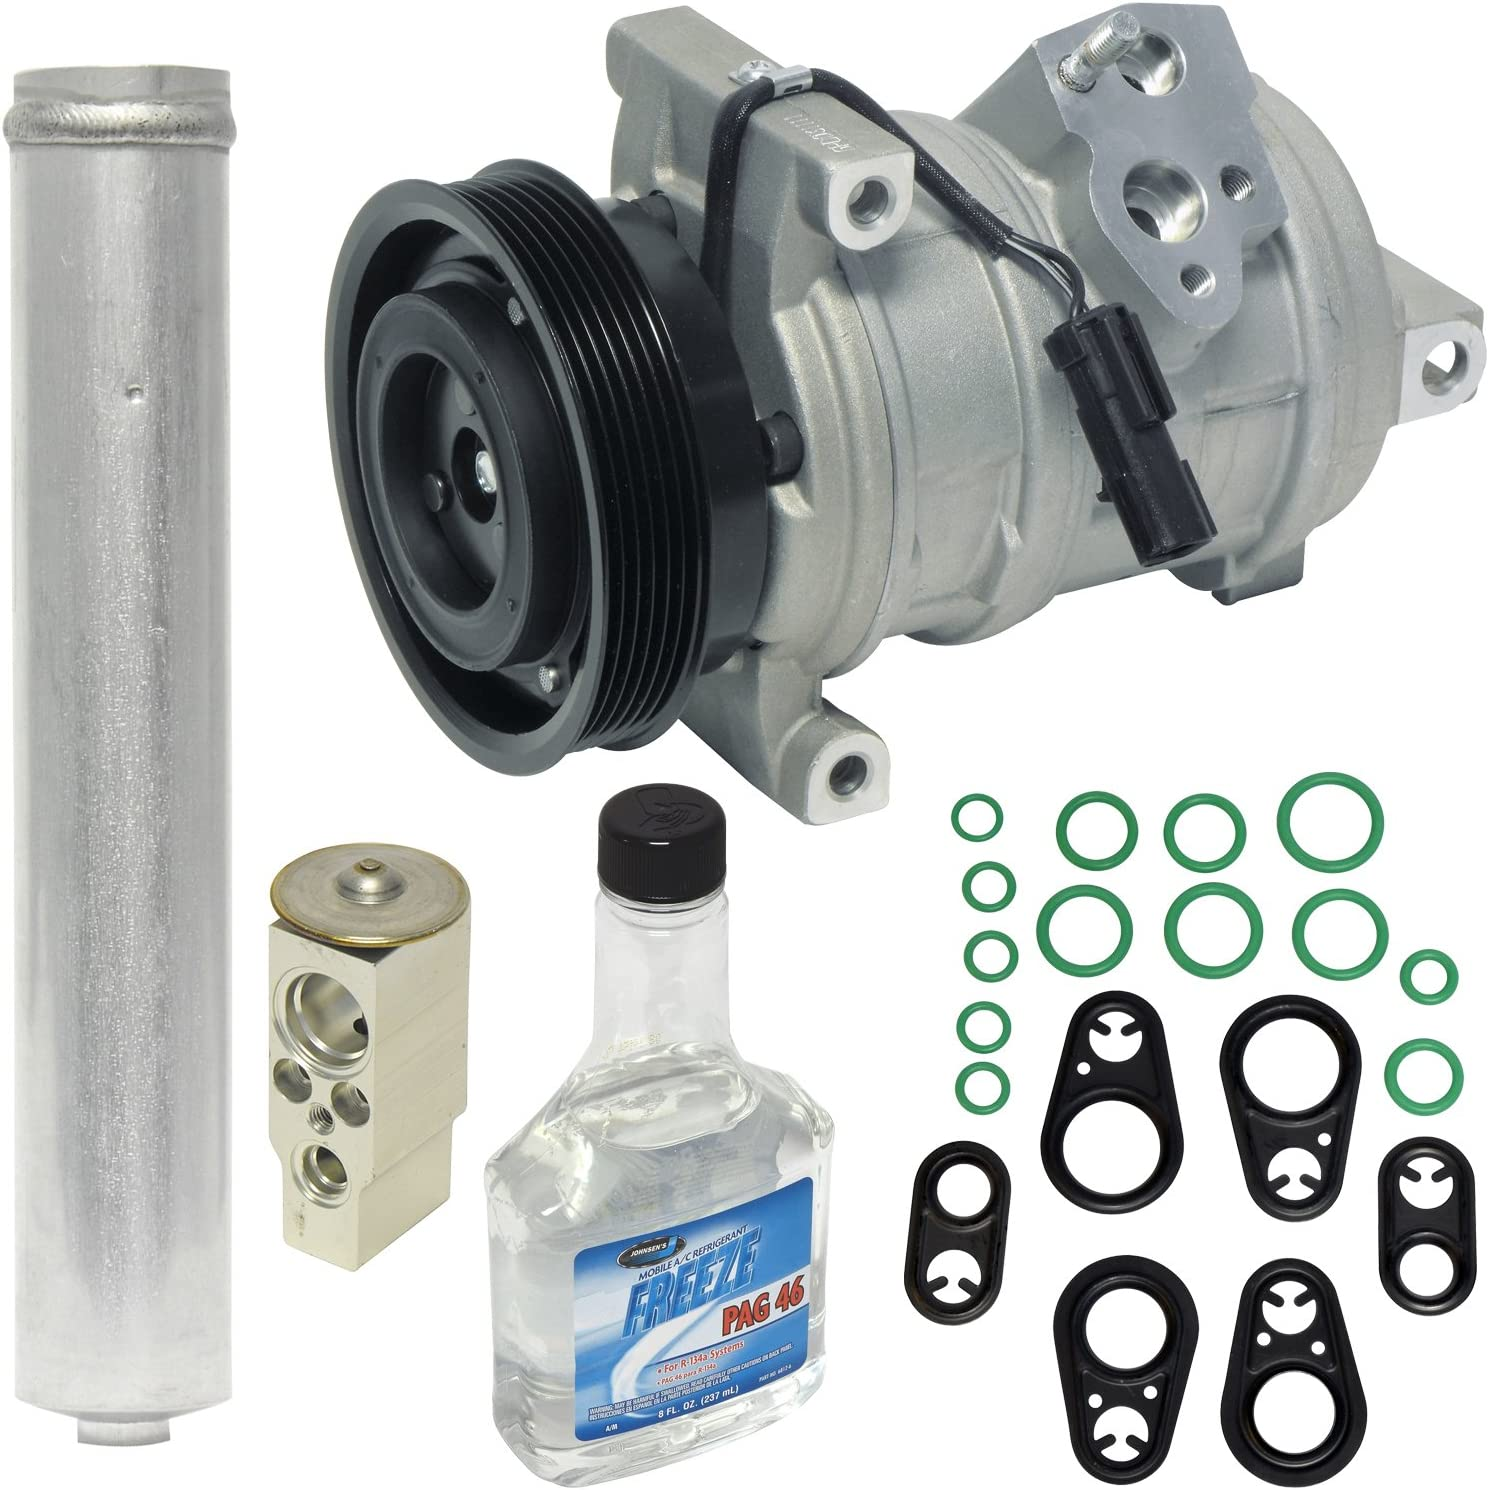 UAC KT 4095 A C Low price Compressor Kit surprise price is realized Pack Component 1 and